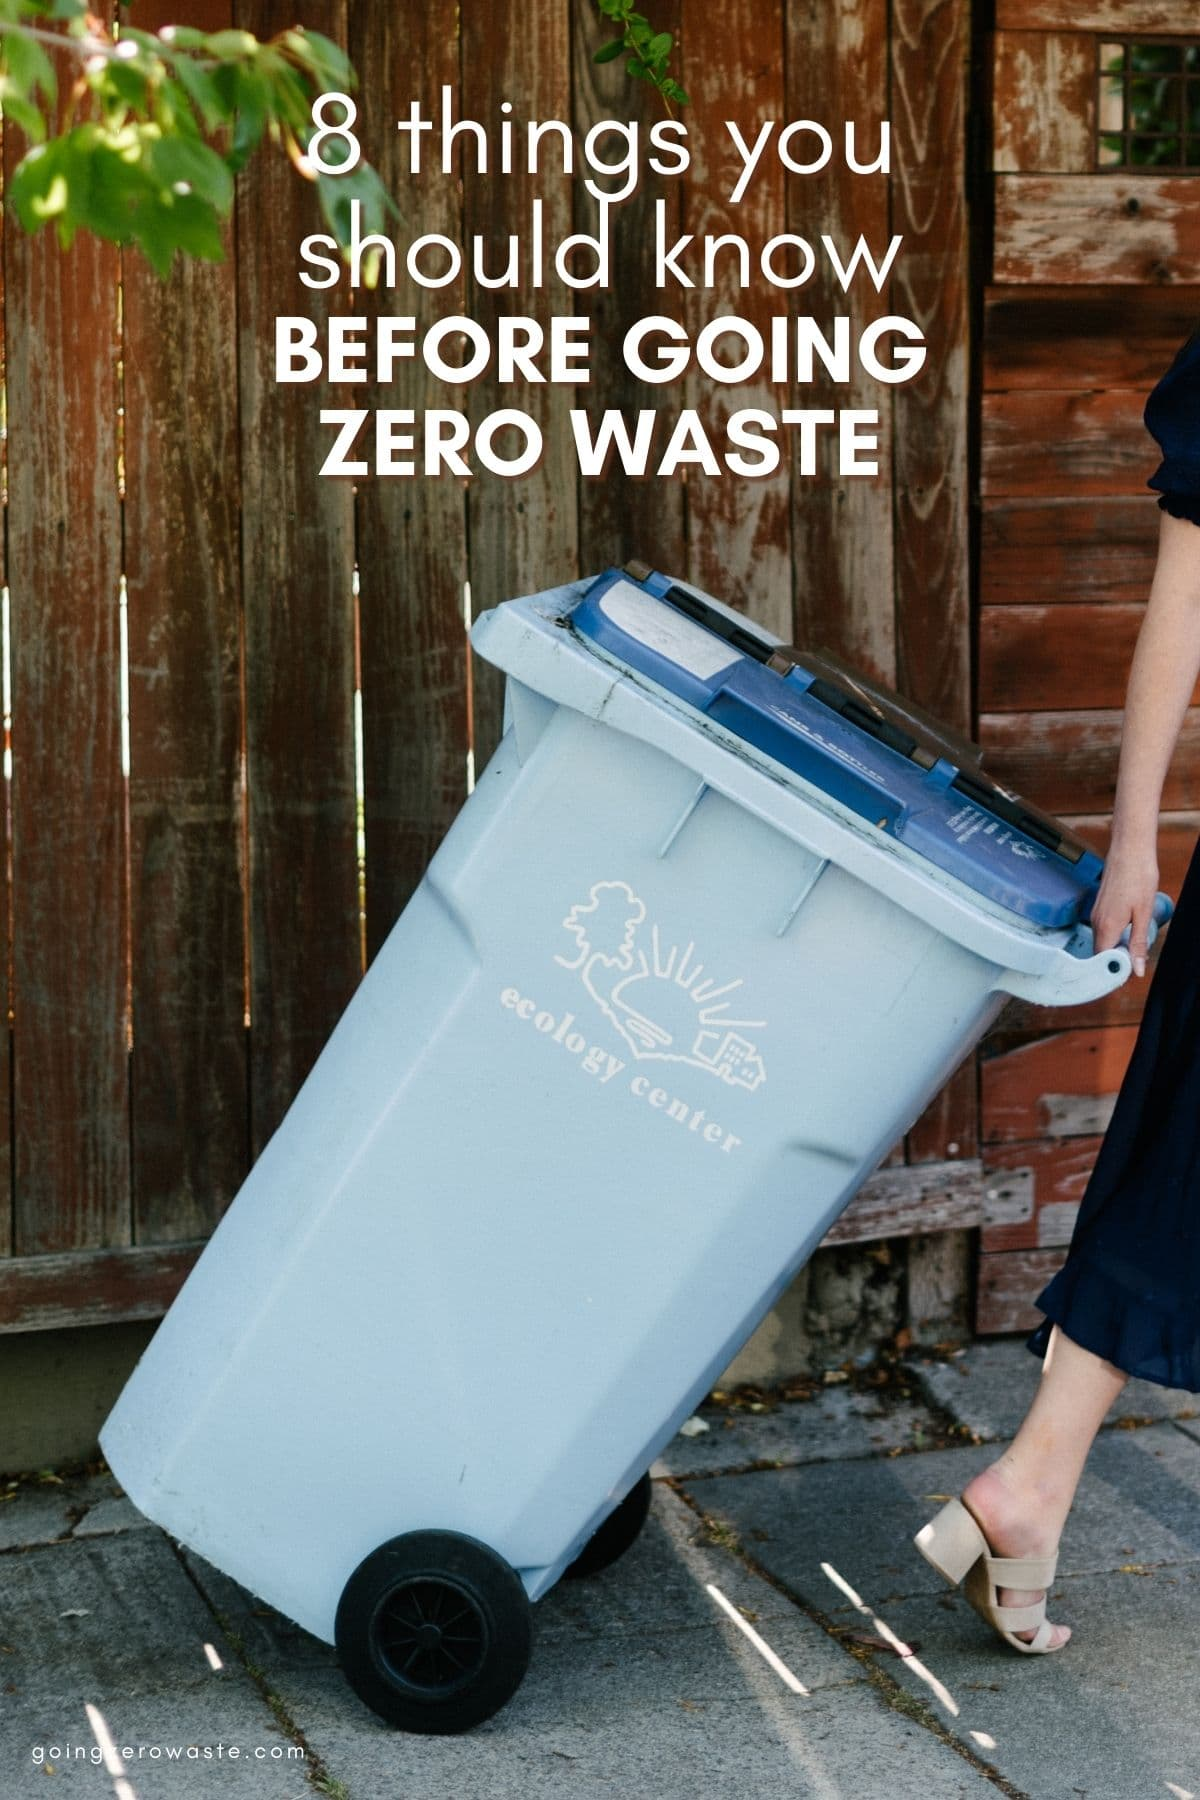 8 Things You Should Know BEFORE Going Zero Waste